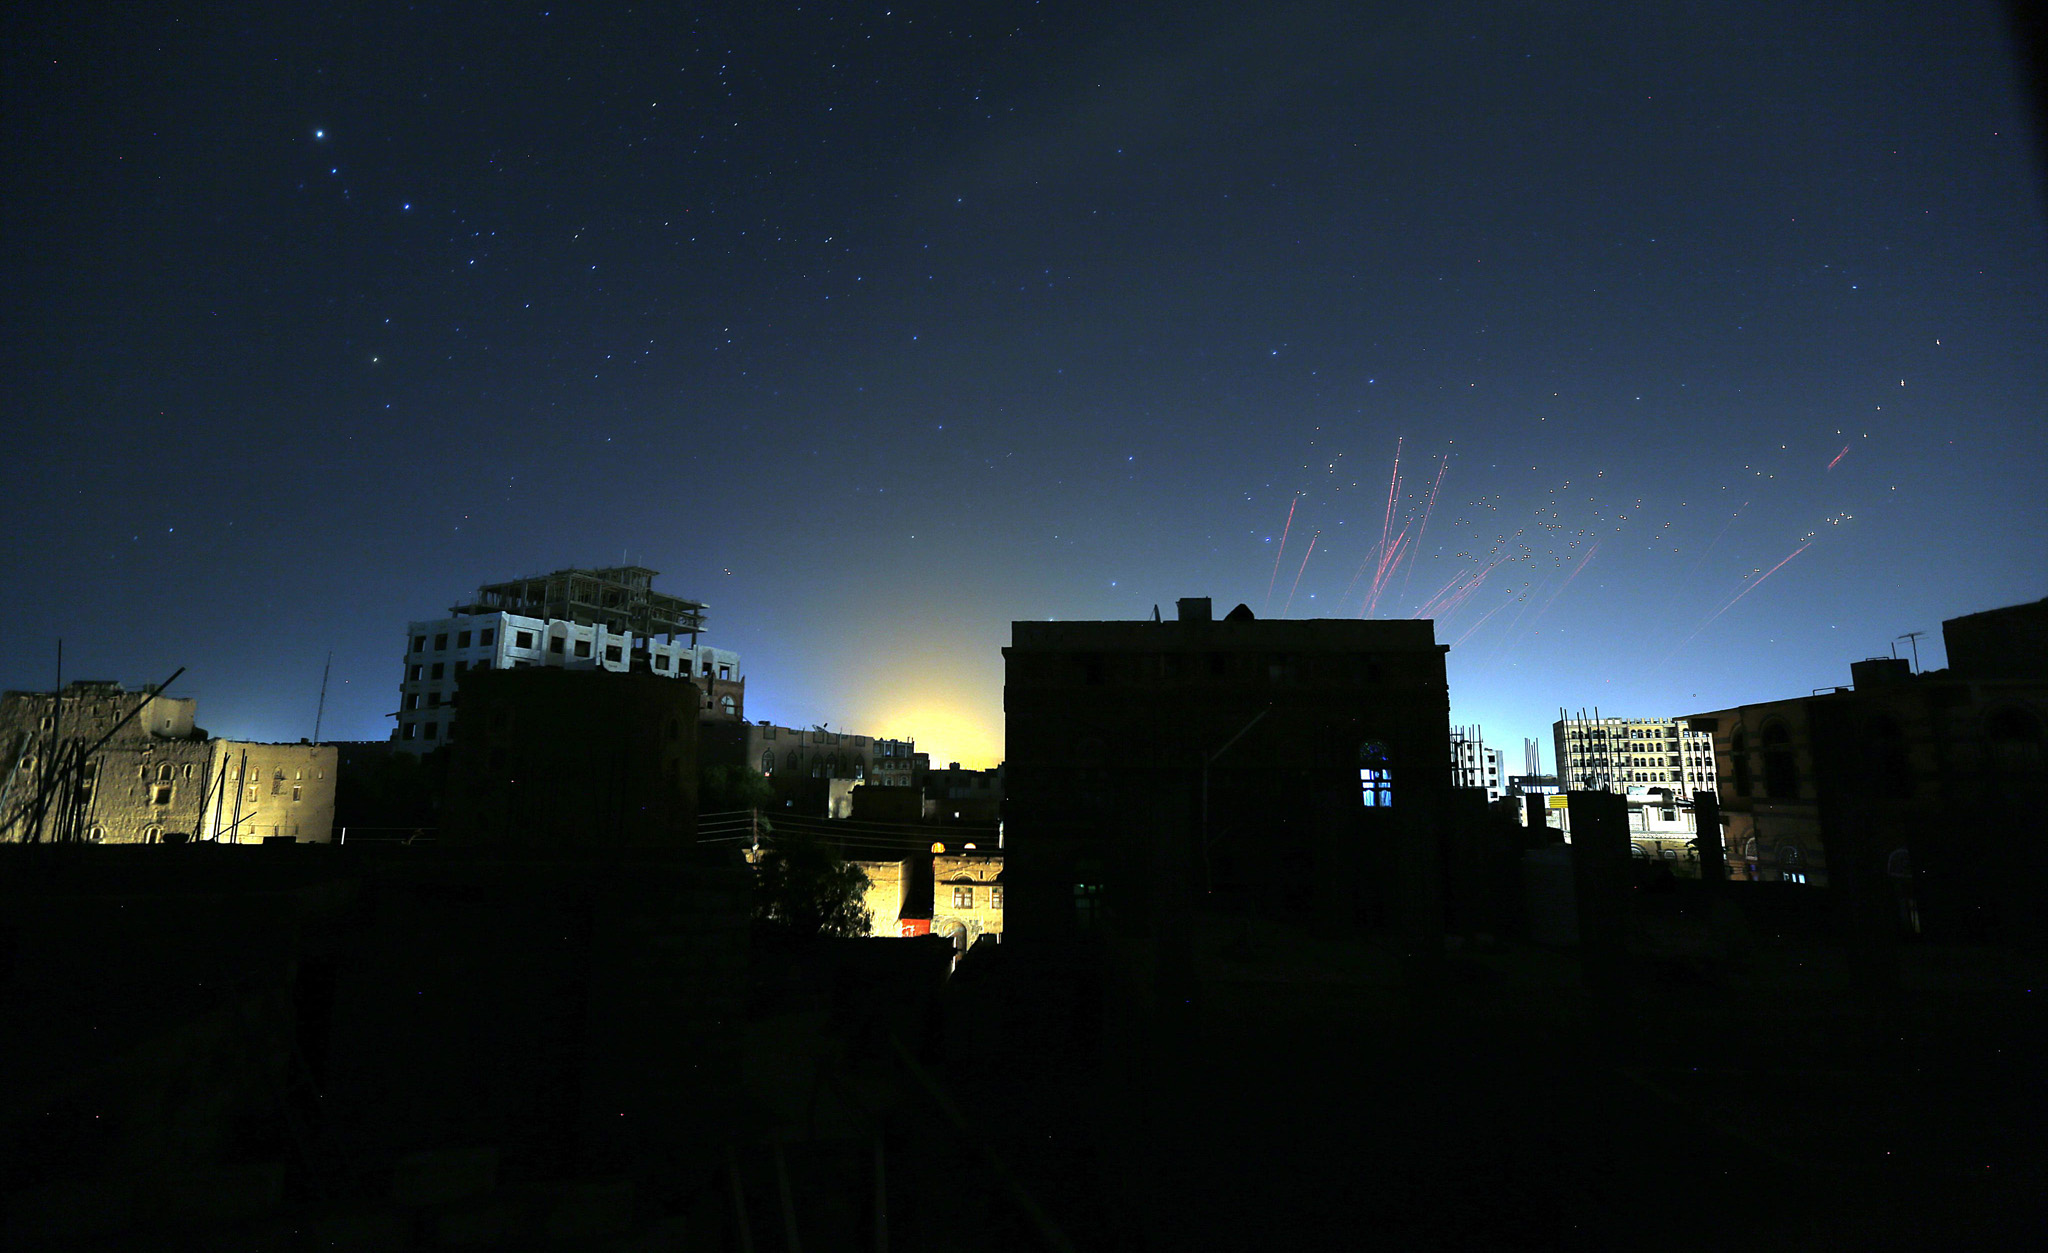 Saudi-led military coalition against Yemen's Houthi rebels...epa04745670 The sky over Sana'a is illuminated by anti-aircraft fire during an alleged airstrike of the Saudi-led coalition ahead of a 5-day ceasefire in Sana'a, Yemen, late 12 May 2015. A Saudi-led coalition halted its air raids on rebel-held positions in neighbouring Yemen late Tuesday as a 5-day ceasefire went into effect at 11 pm local time (2000 GMT). The ceasefire, which is intended to allow badly-needed humanitarian aid reach people affected by the conflict, was preceded by a day of intensive airstrikes on positions held by the Houthi rebels in northern and central Yemen.  EPA/YAHYA ARHAB